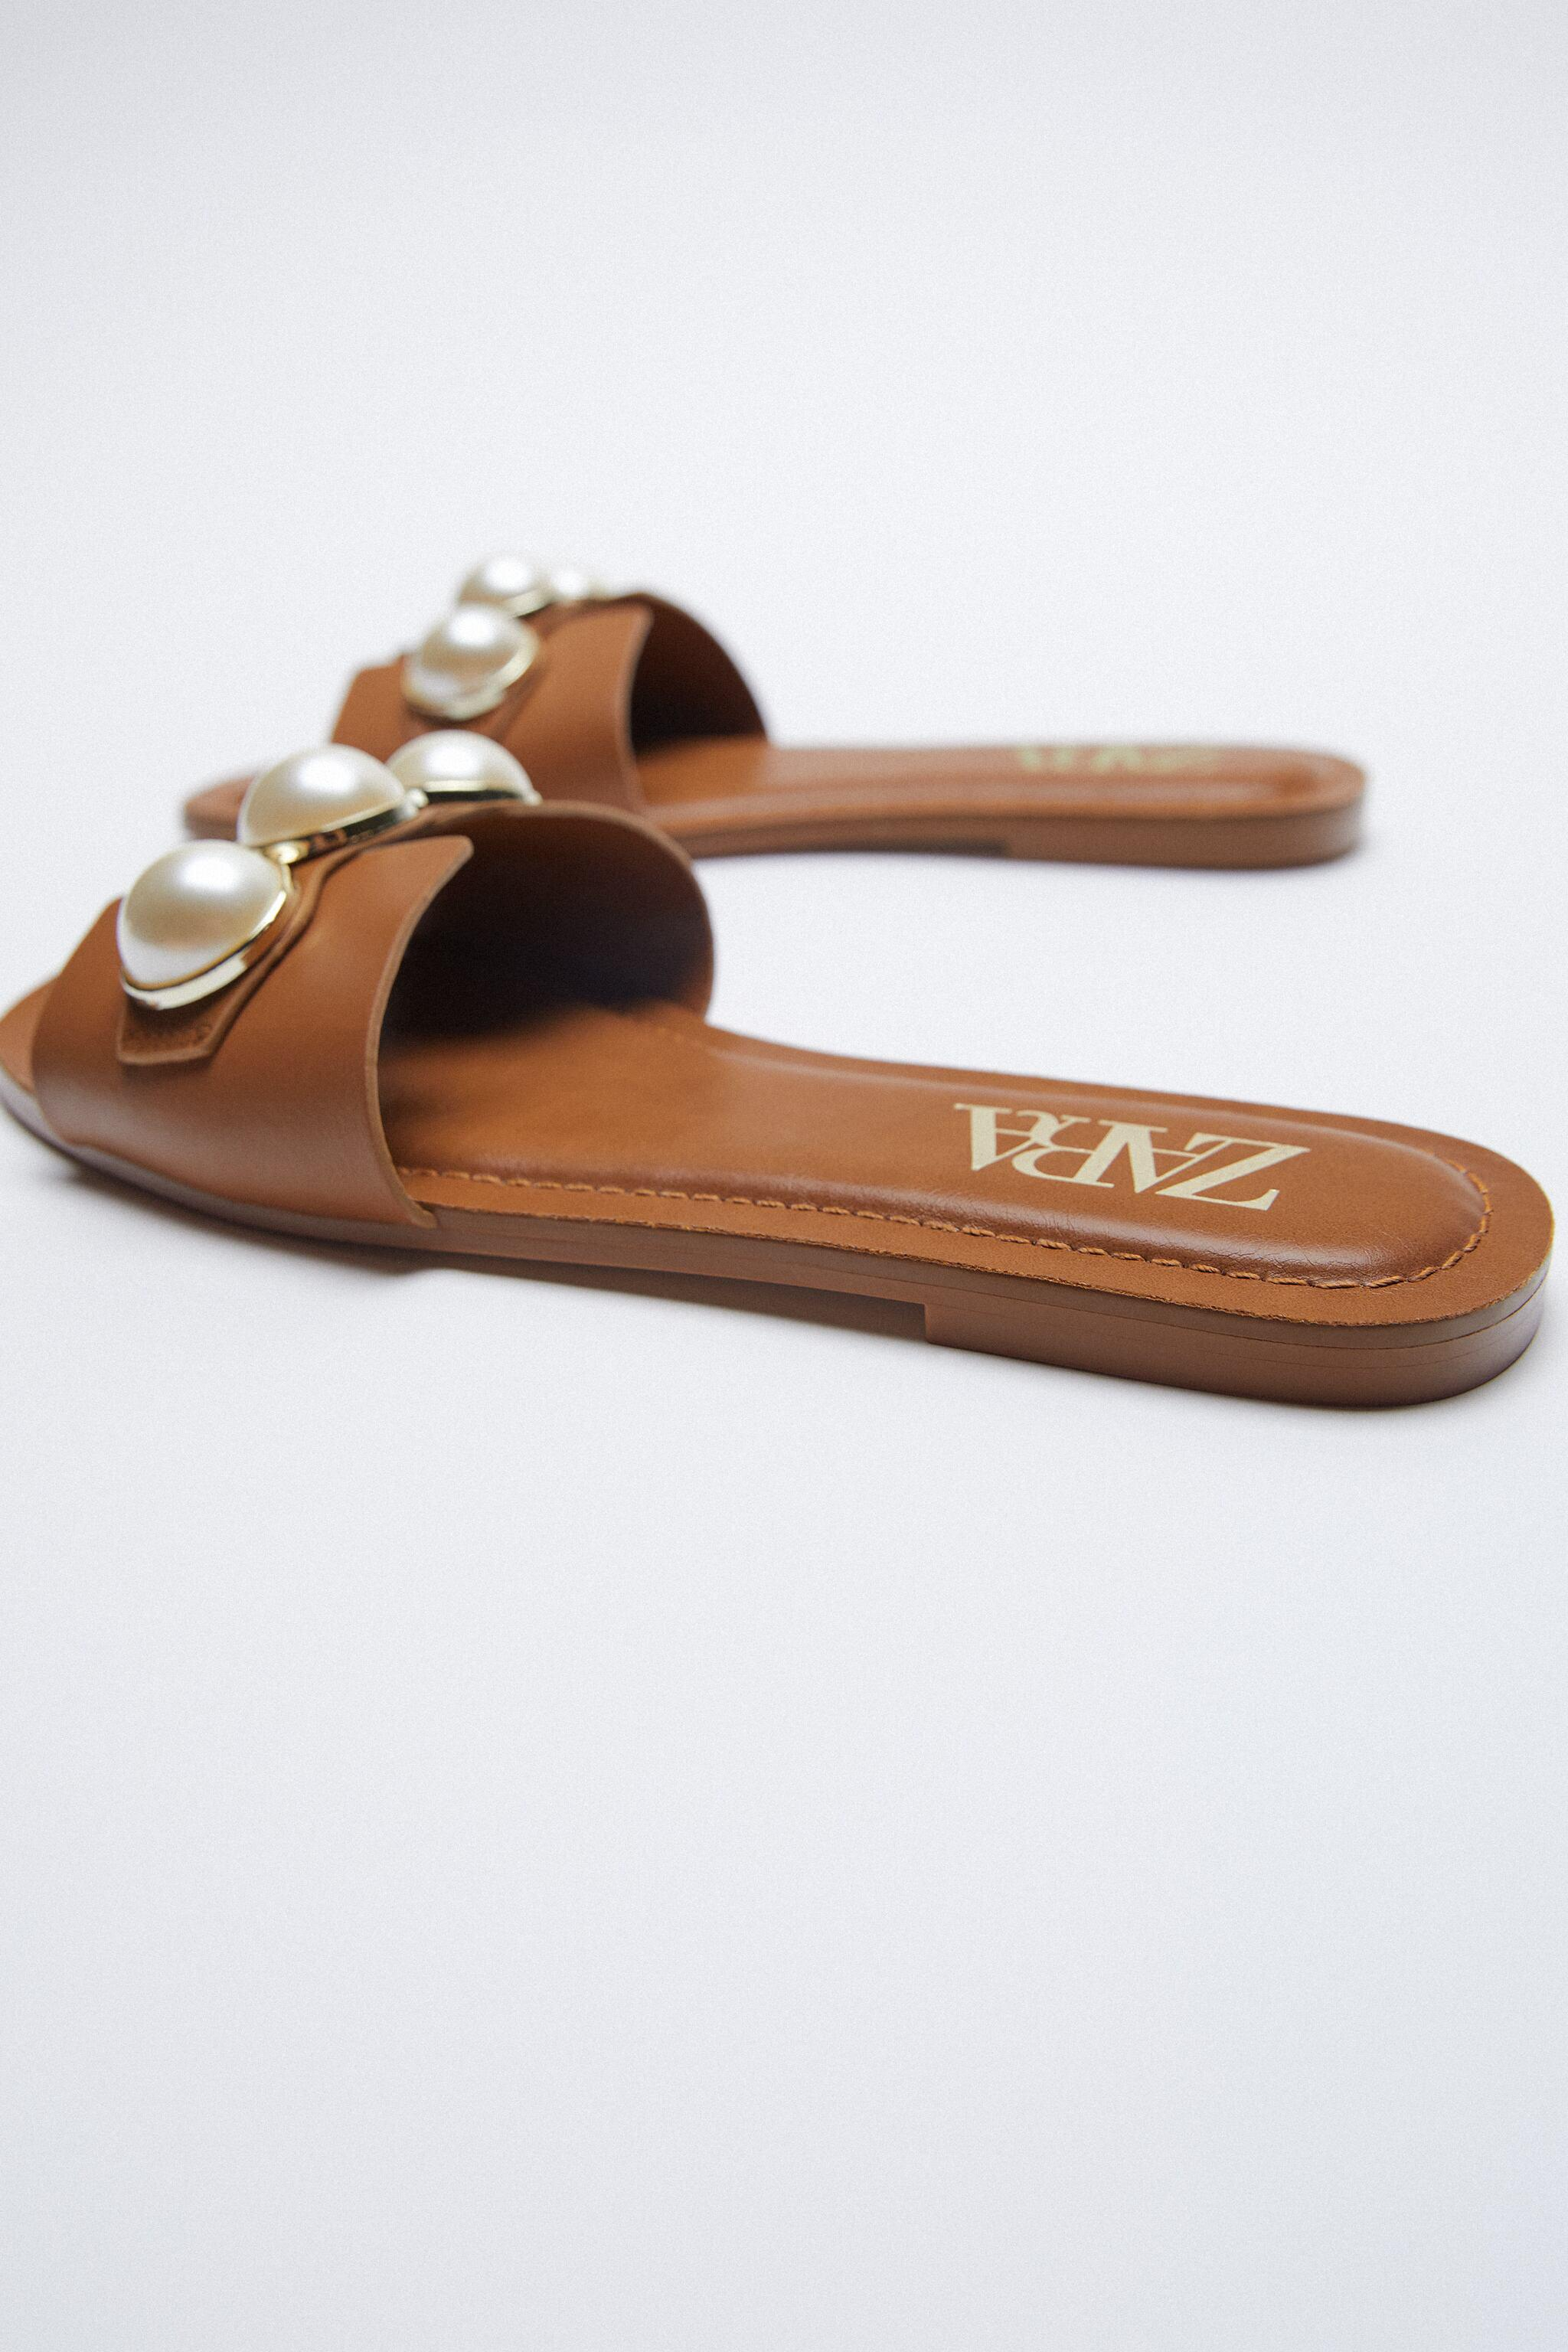 LEATHER SLIDE SANDALS WITH PEARLS 4